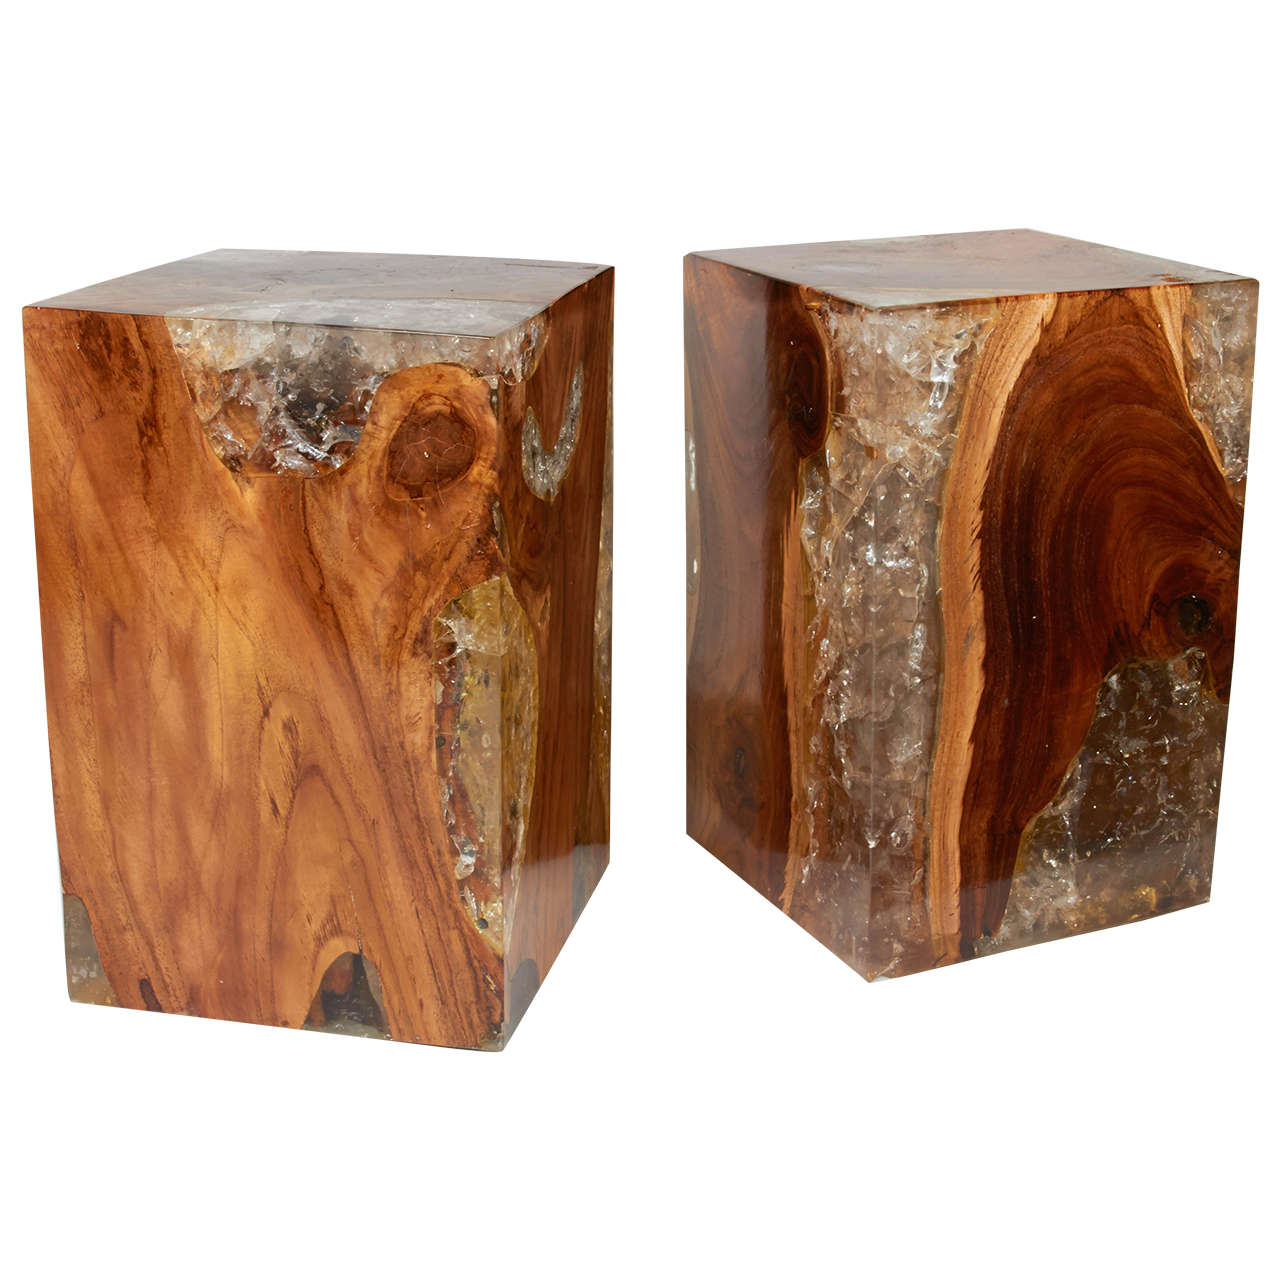 Pair Of Modern Organic Teak Wood And Cracked Resin Side Tables